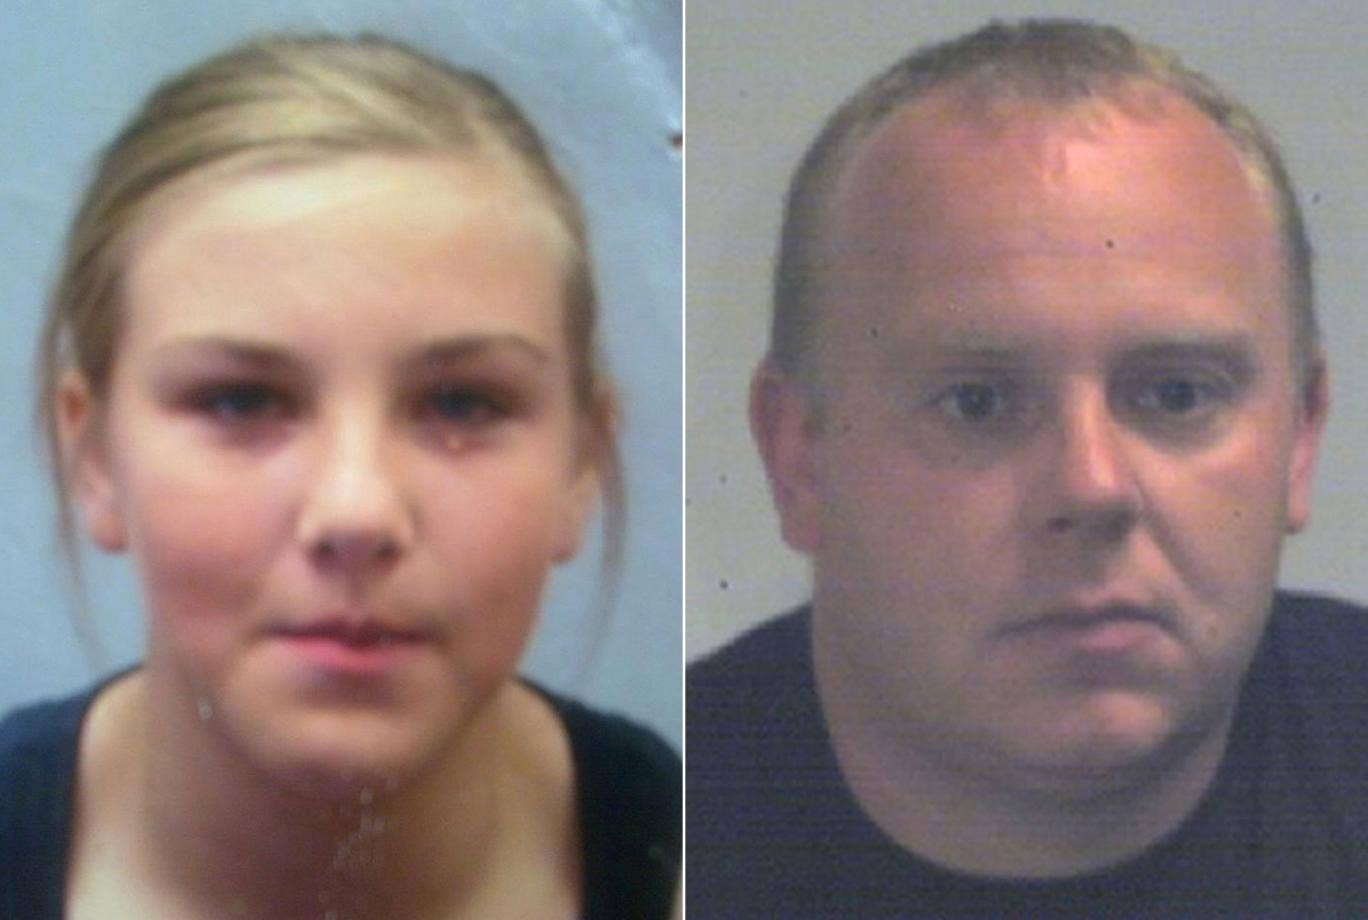 Missing 14 year old girl Lorna Vickerage, left and John Bush, right, 35. The teenager has been missing since 10 June and police believe she has vanished with a man over twice her age, believed to be John Bush